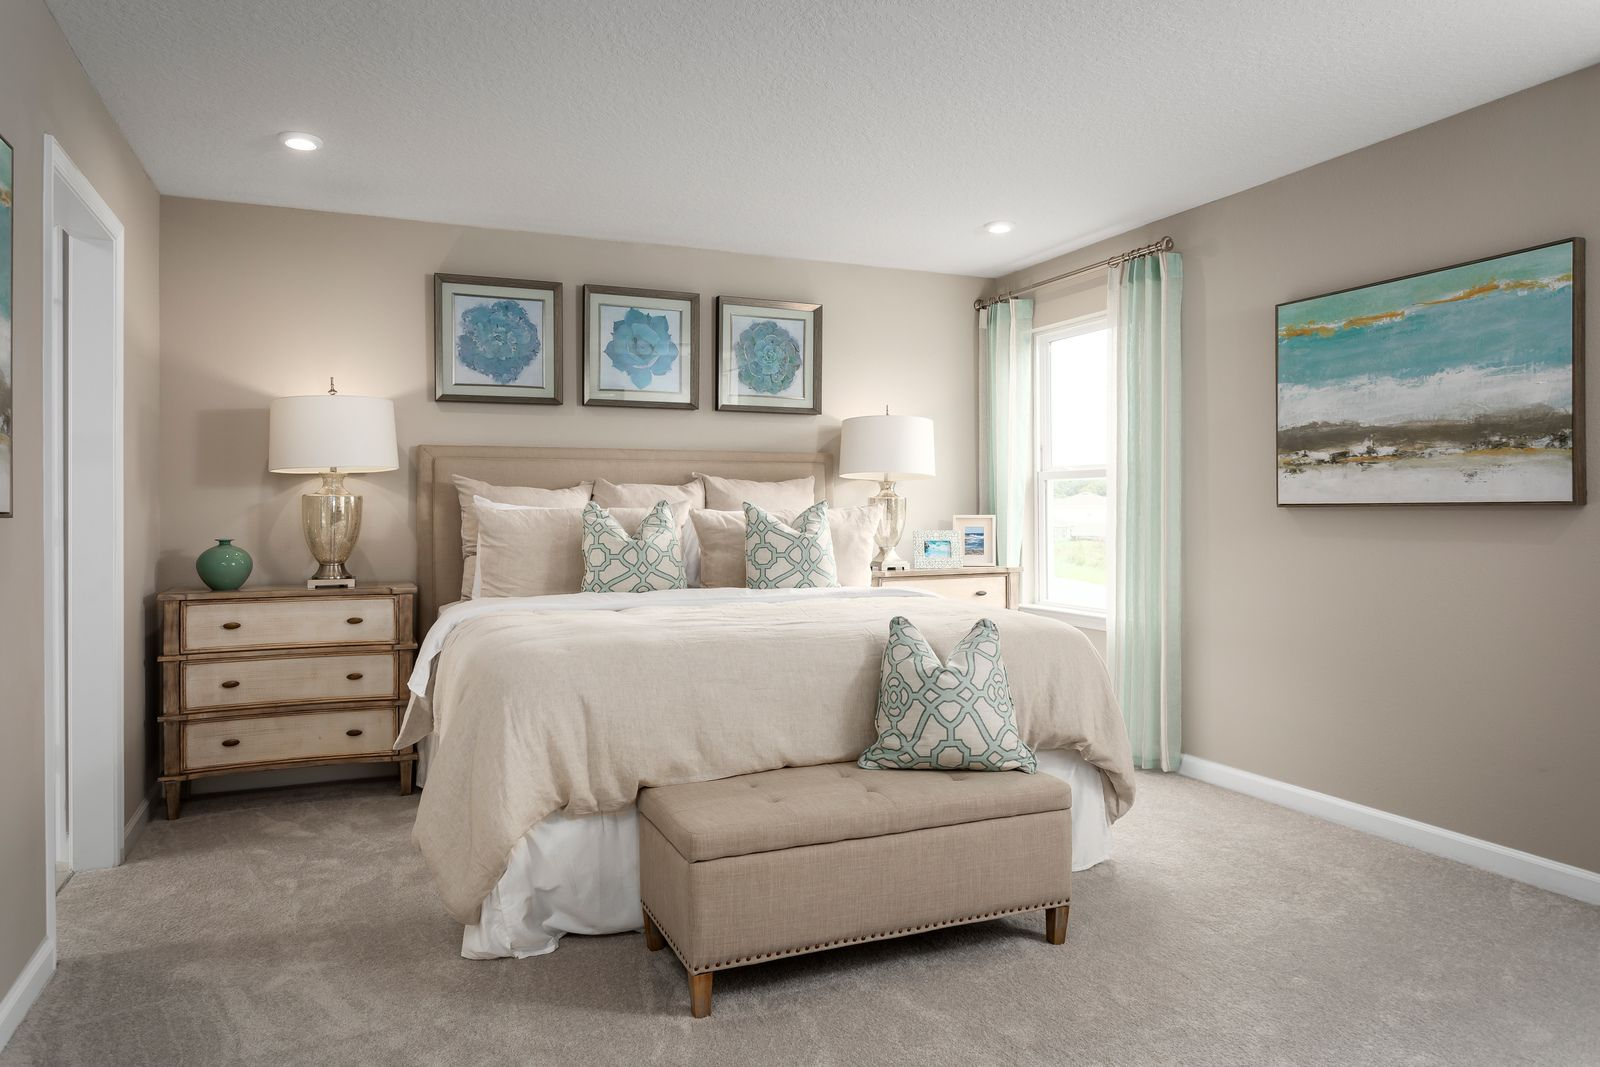 Bedroom featured in the Hillcrest By Ryan Homes in Orlando, FL